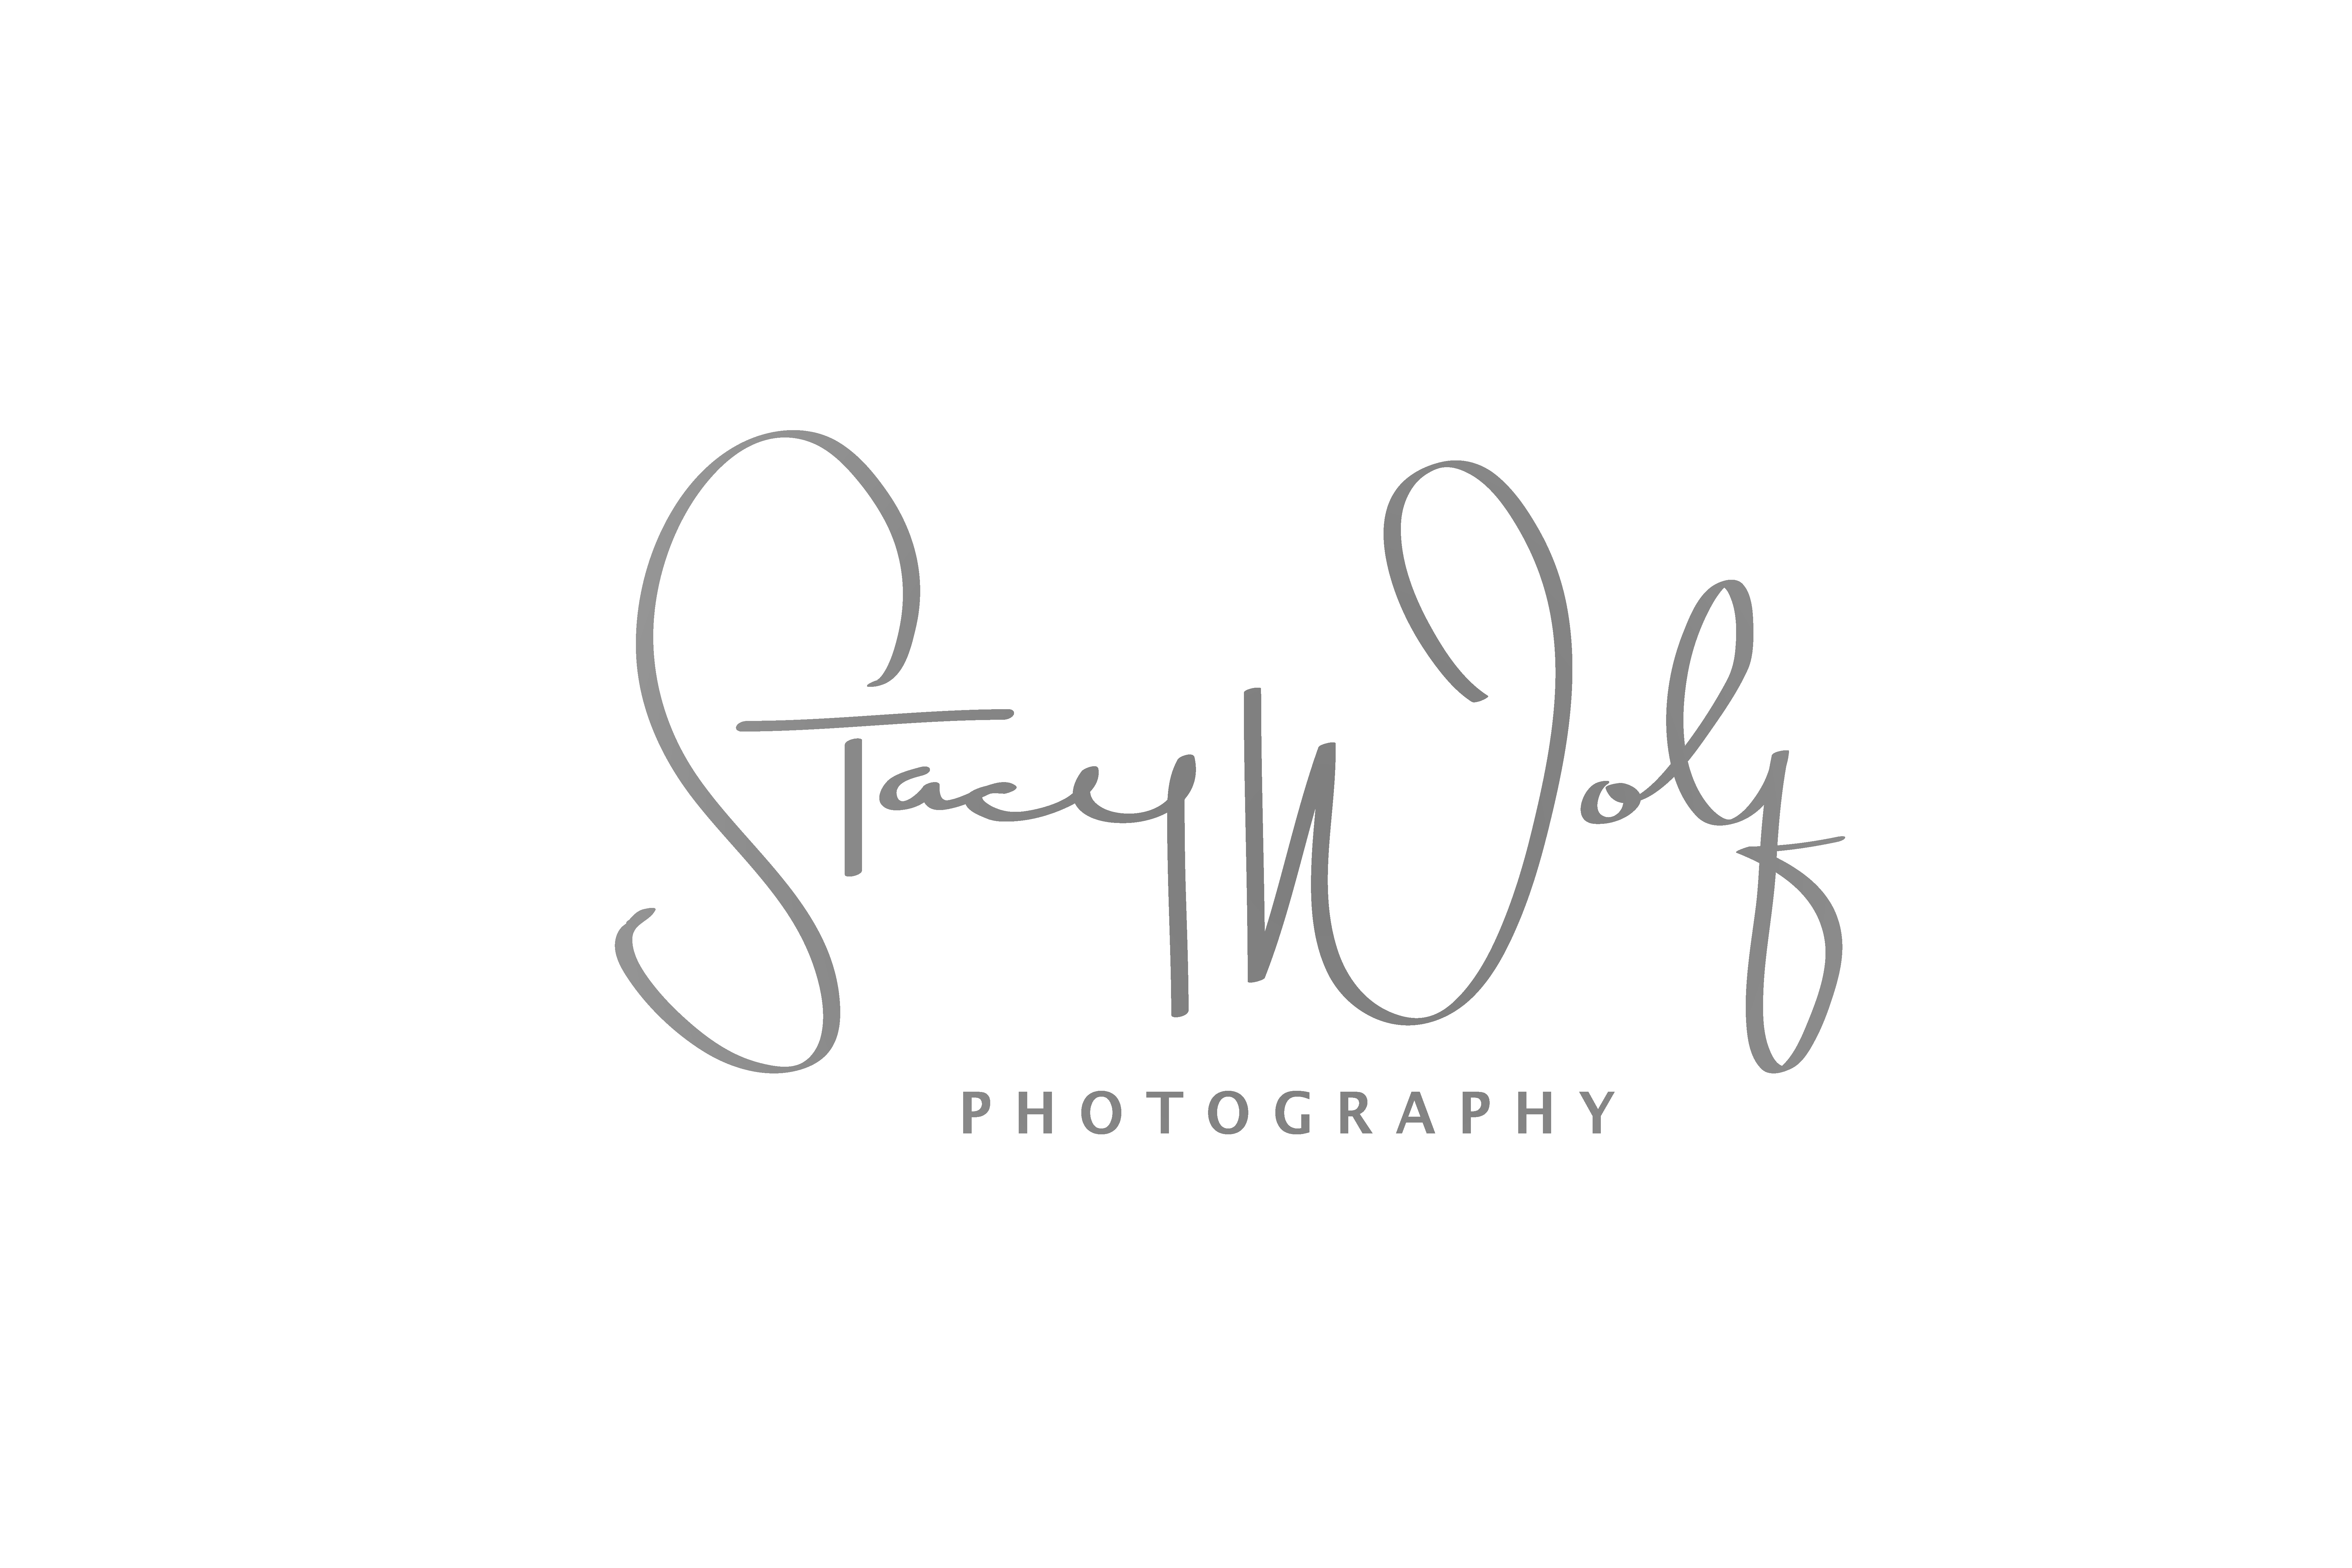 Stacy Wolf Photography